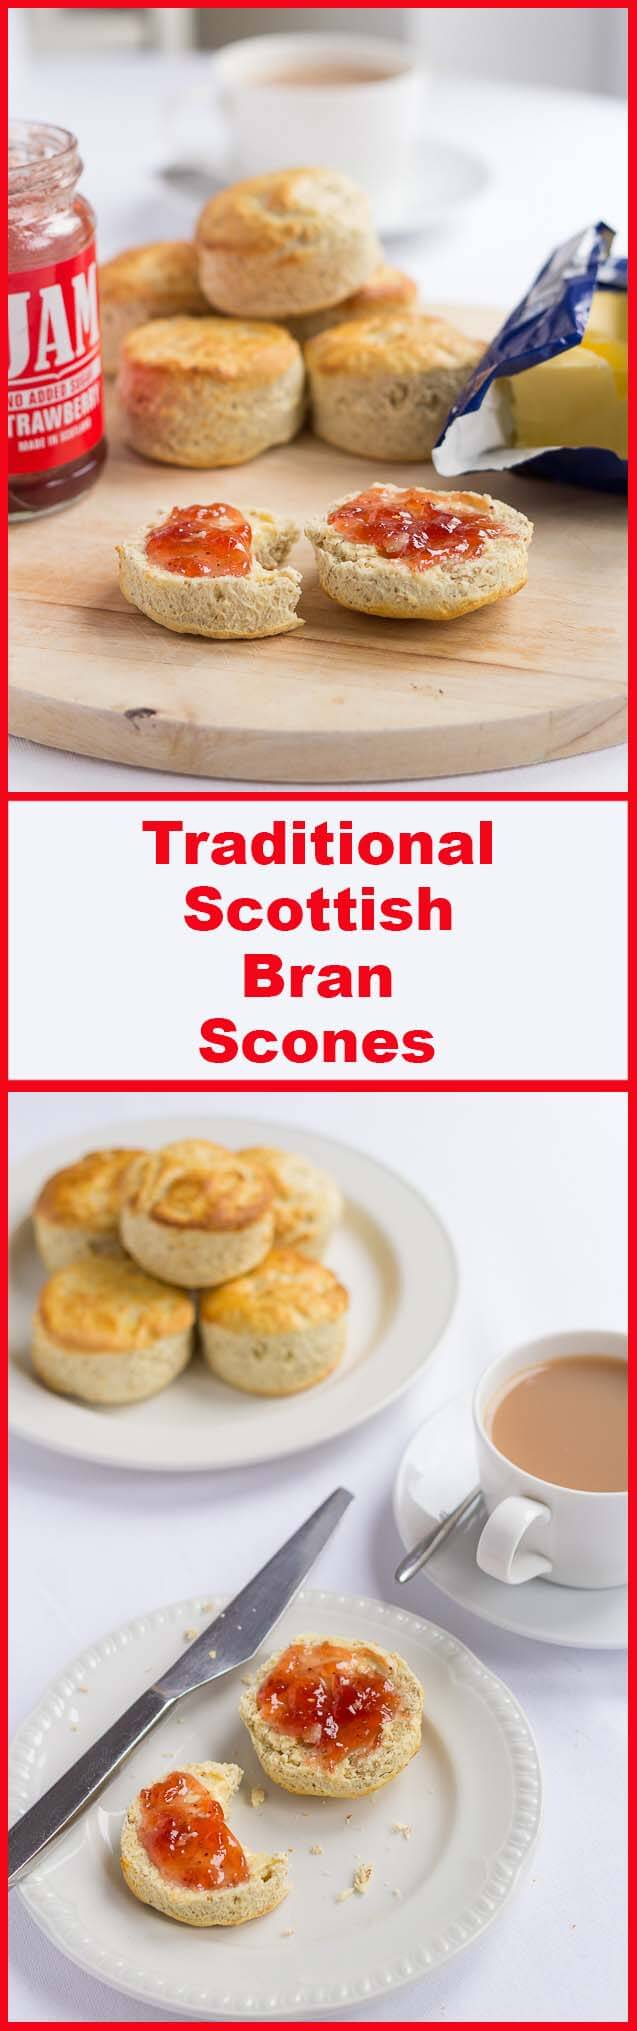 Easy, tasty Scottish bran scones recipe. Made to a traditional family recipe and best served with butter and home made jam.